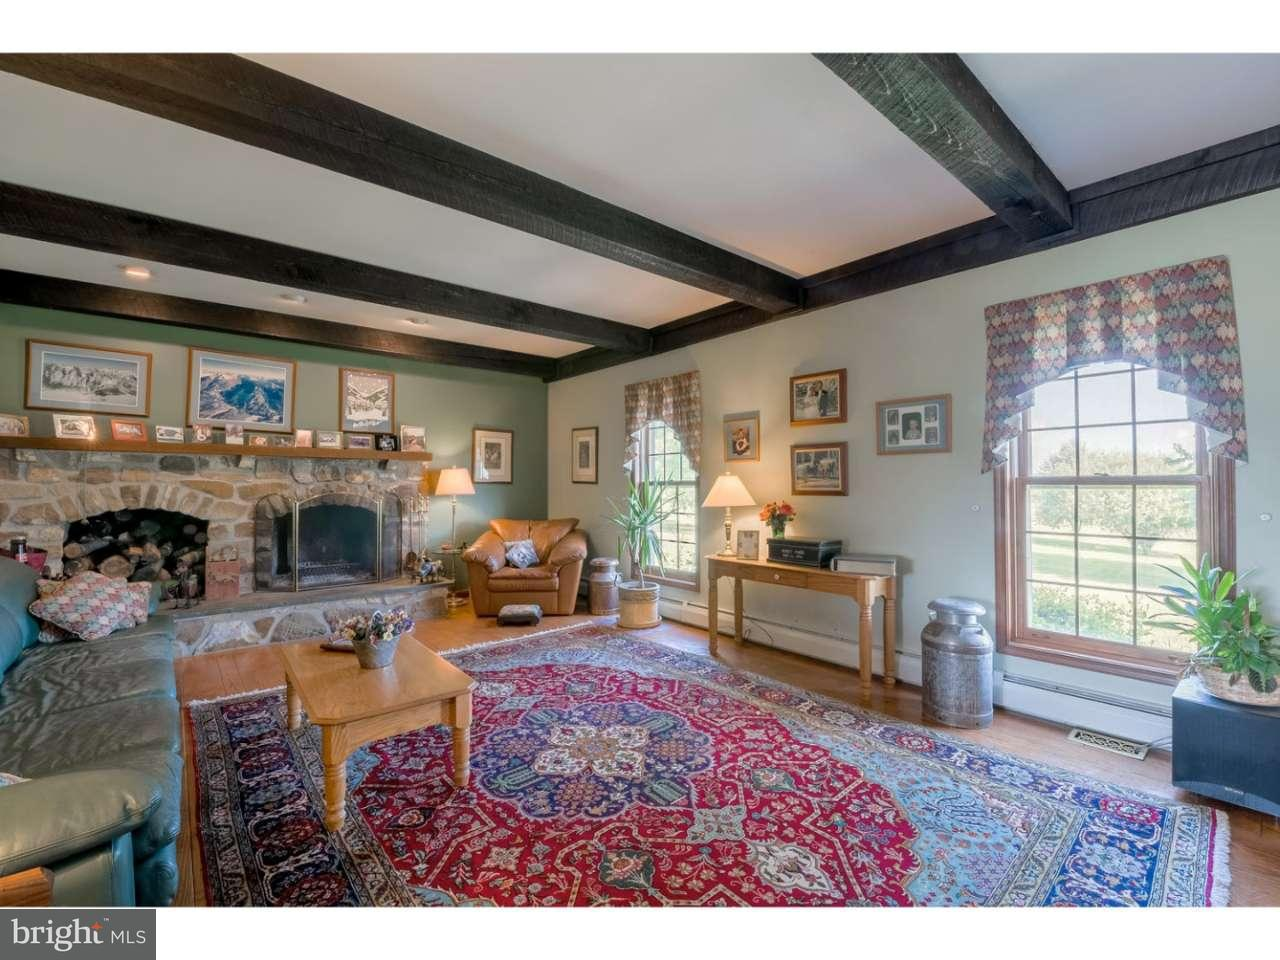 596 CENTER HALL RD, COCHRANVILLE - Listed at $998,000, COCHRANVILLE